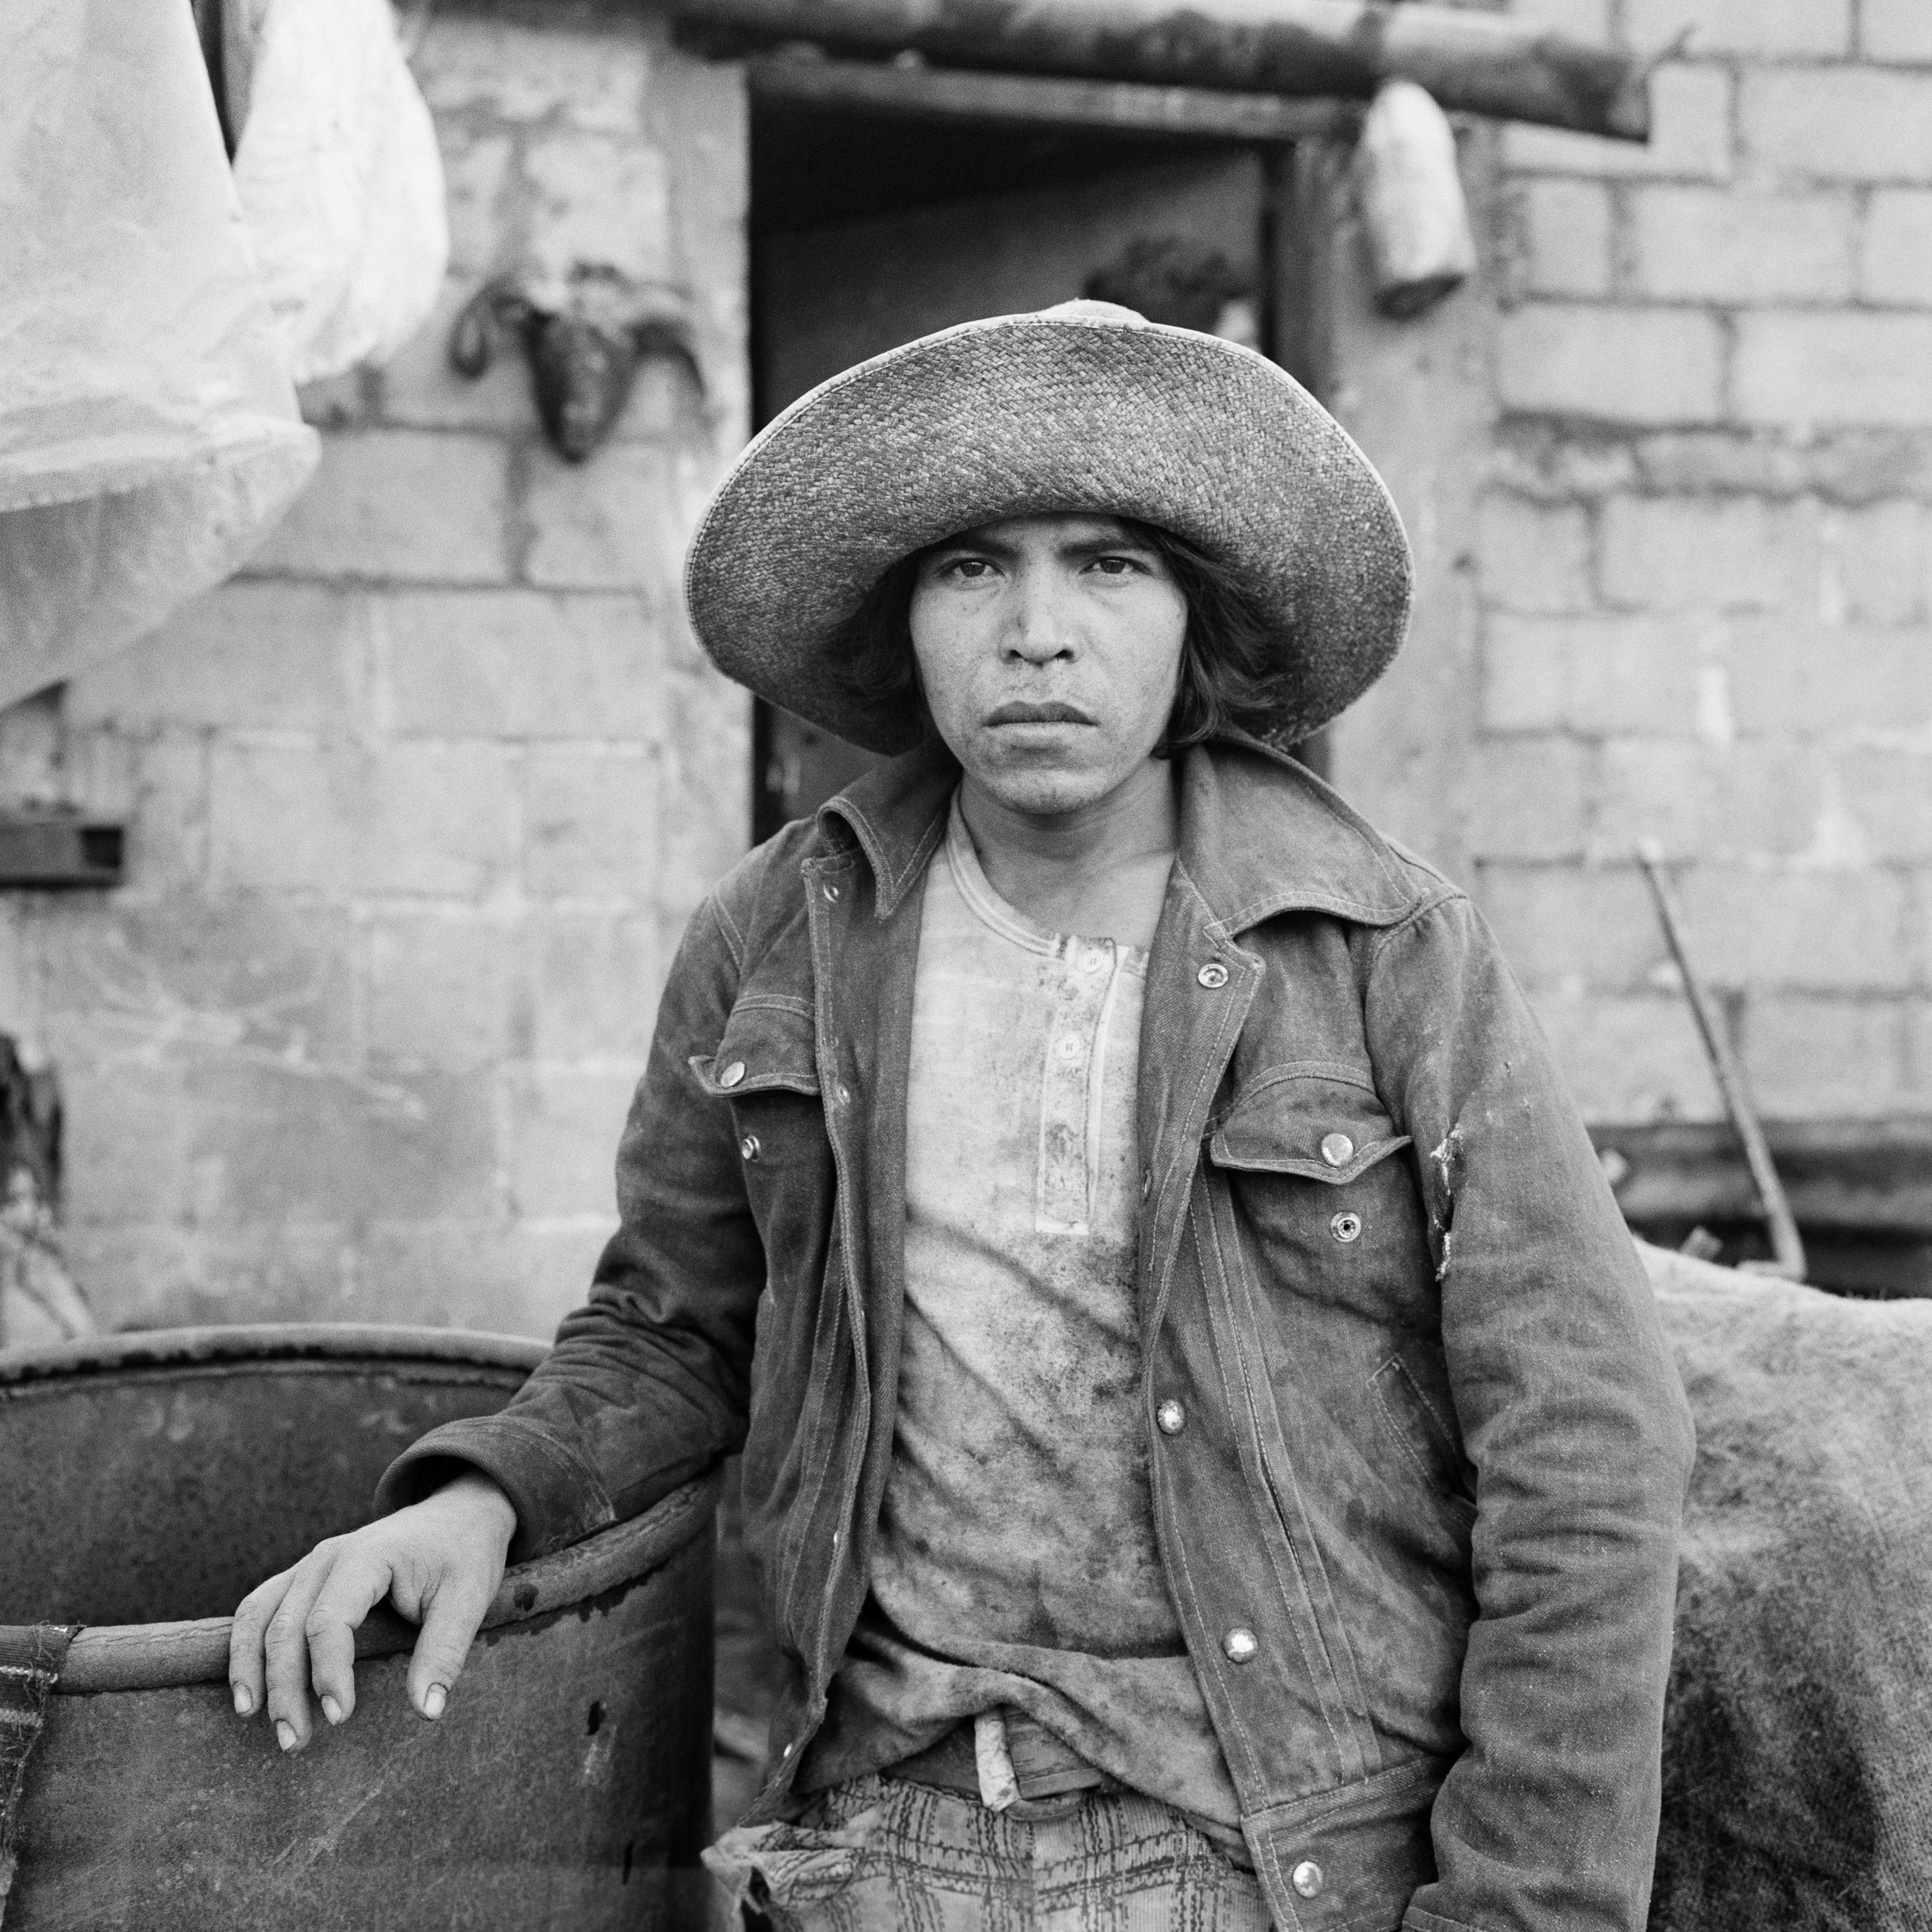 A Guatemalan laborer stands near his temporary home along the Guatemalan-Mexican border in northwest Guatemala, January 1, 1983.